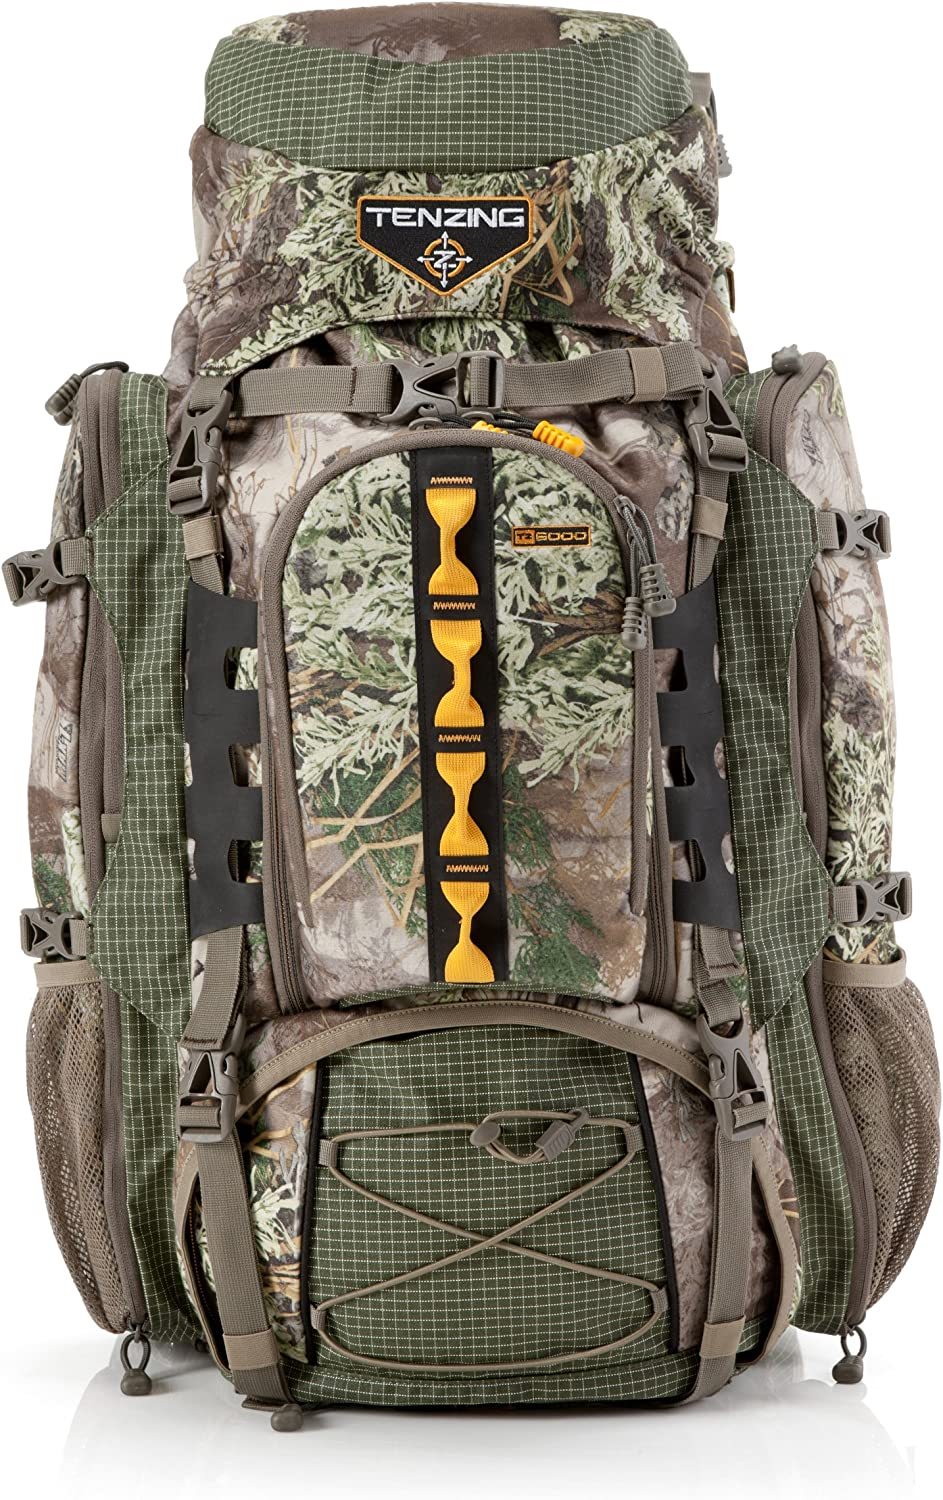 Tenzing 6000 Backpack